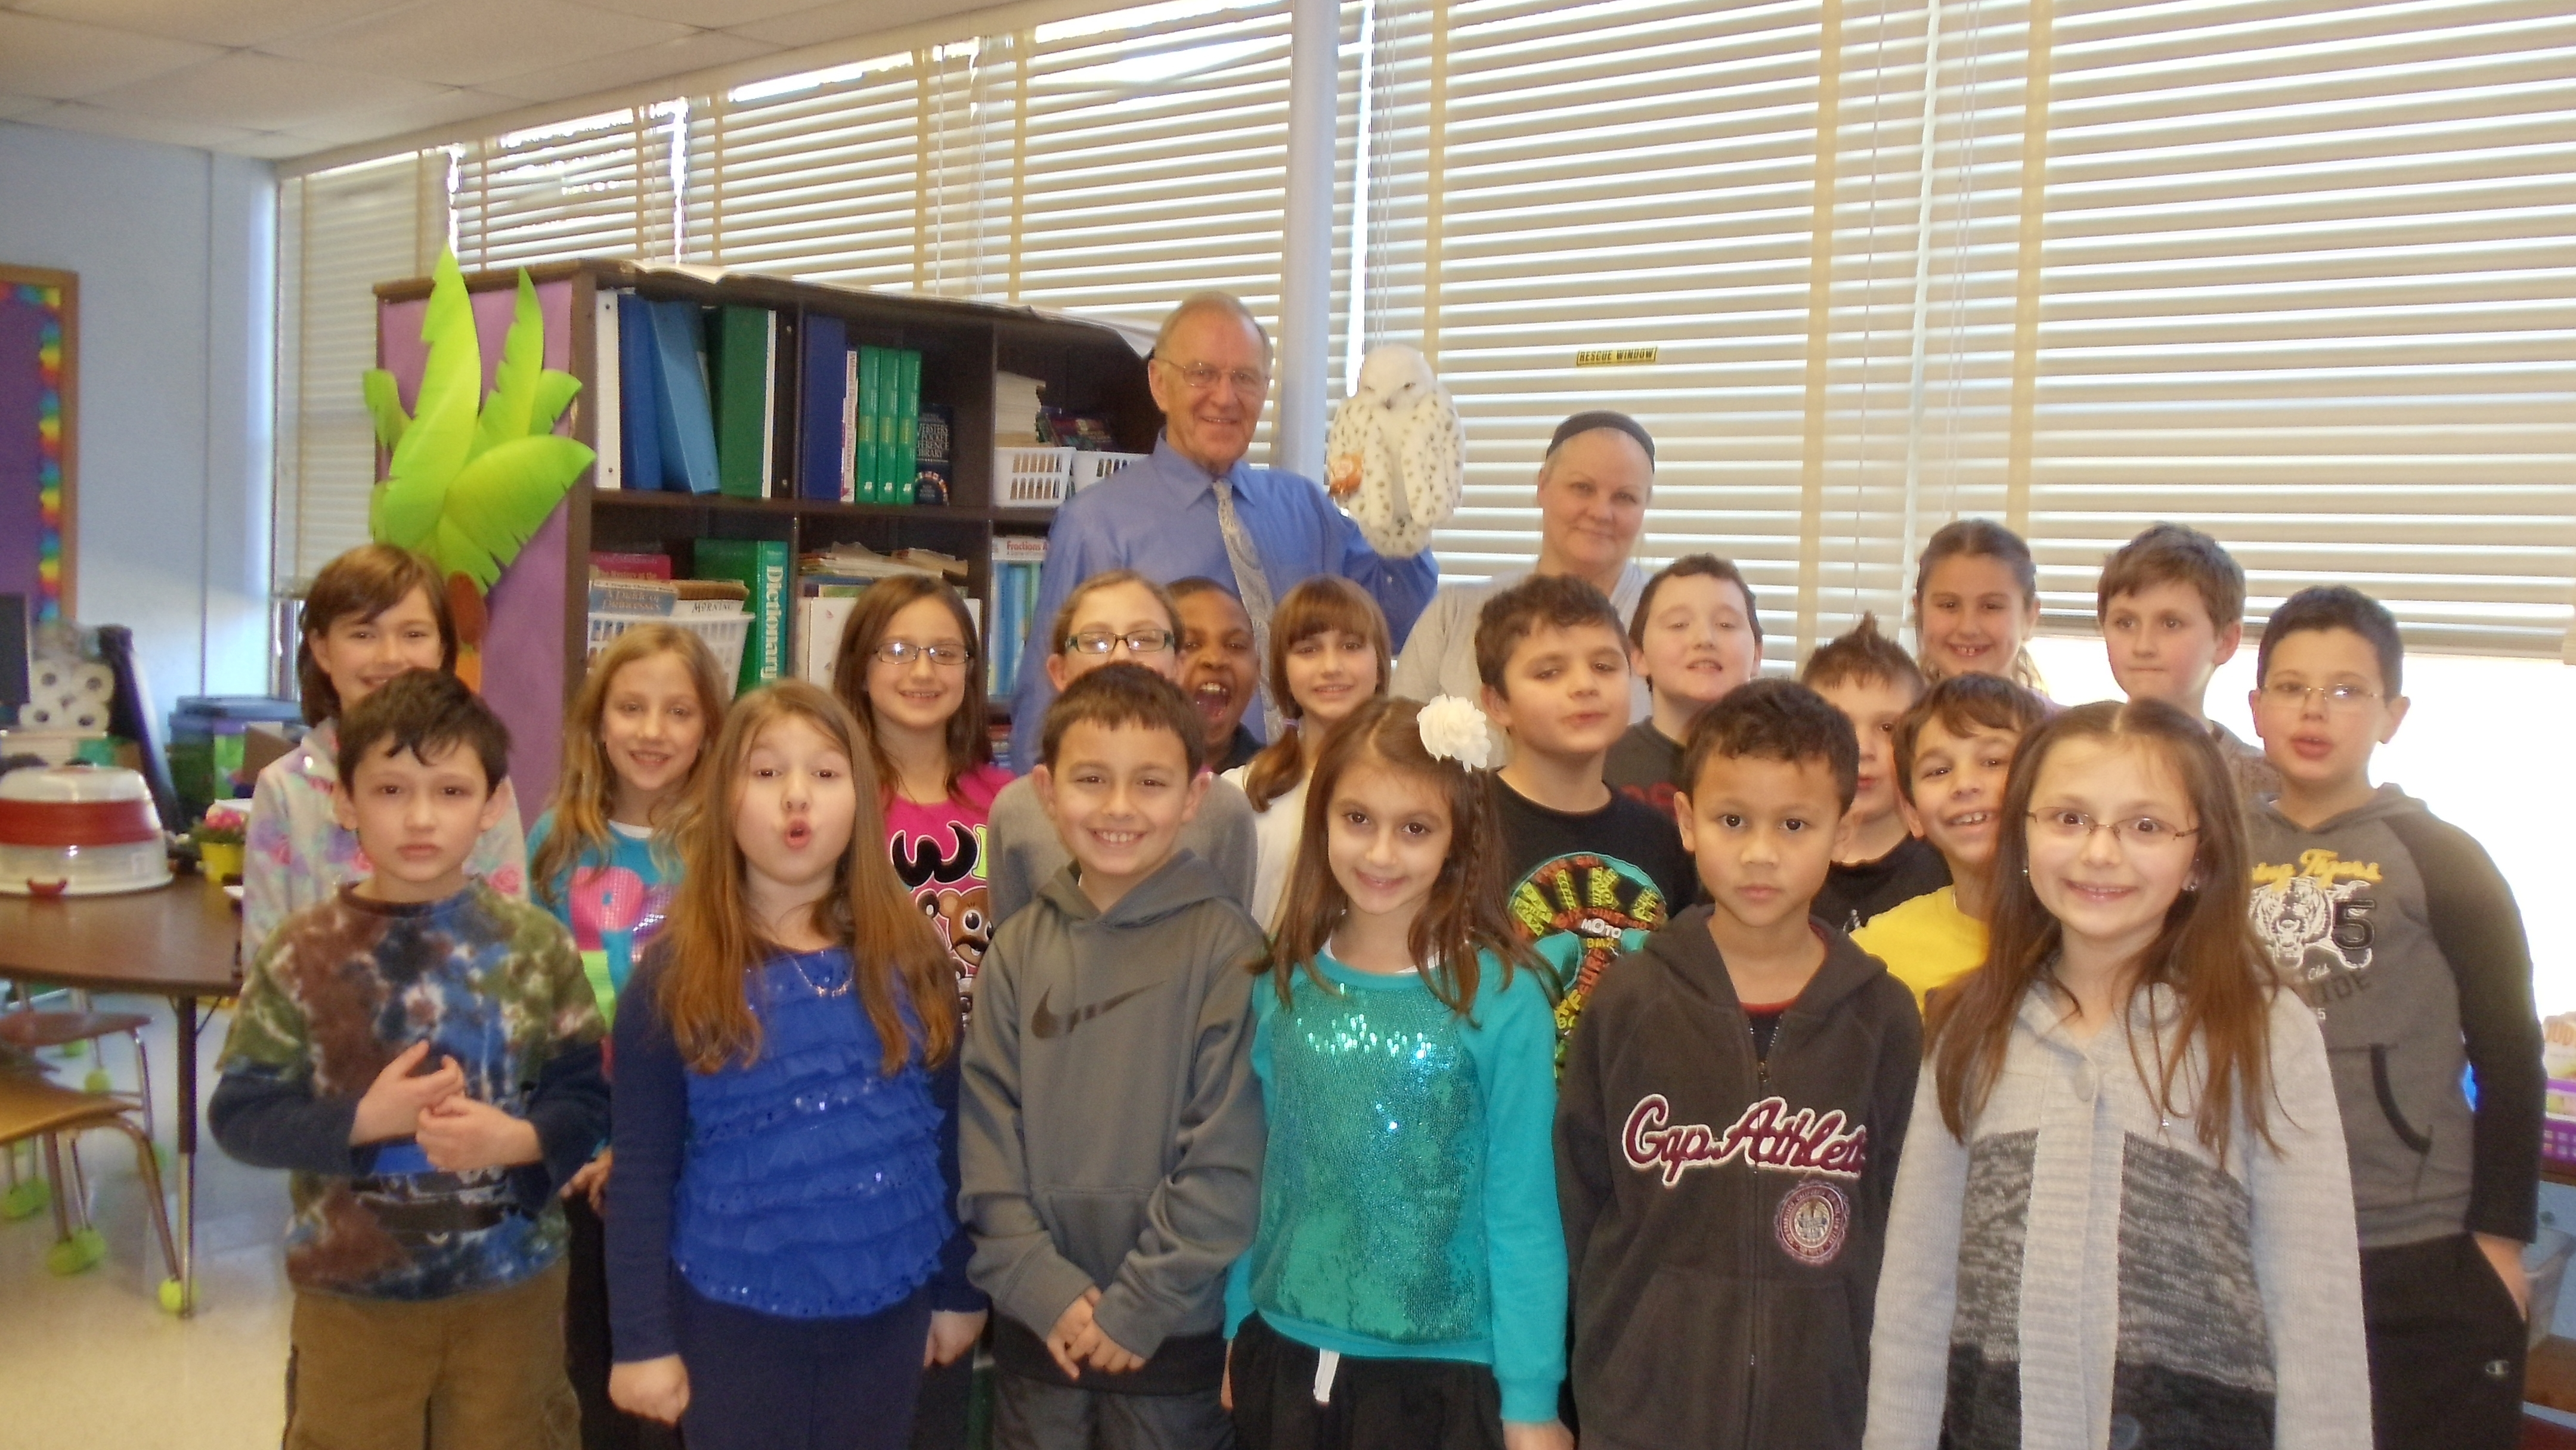 "In January, Assemblyman Dave McDonough (R,C,I-Merrick) visited Mrs. Armstrong's 3rd grade class at Old Mill Road Elementary School as part of their Parents As Reading Partners (PARP) program. As part of the reading program, Assemblyman McDonough shared ""Owl Moon"" by Jane Yolan with the students and discussed the importance of reading."